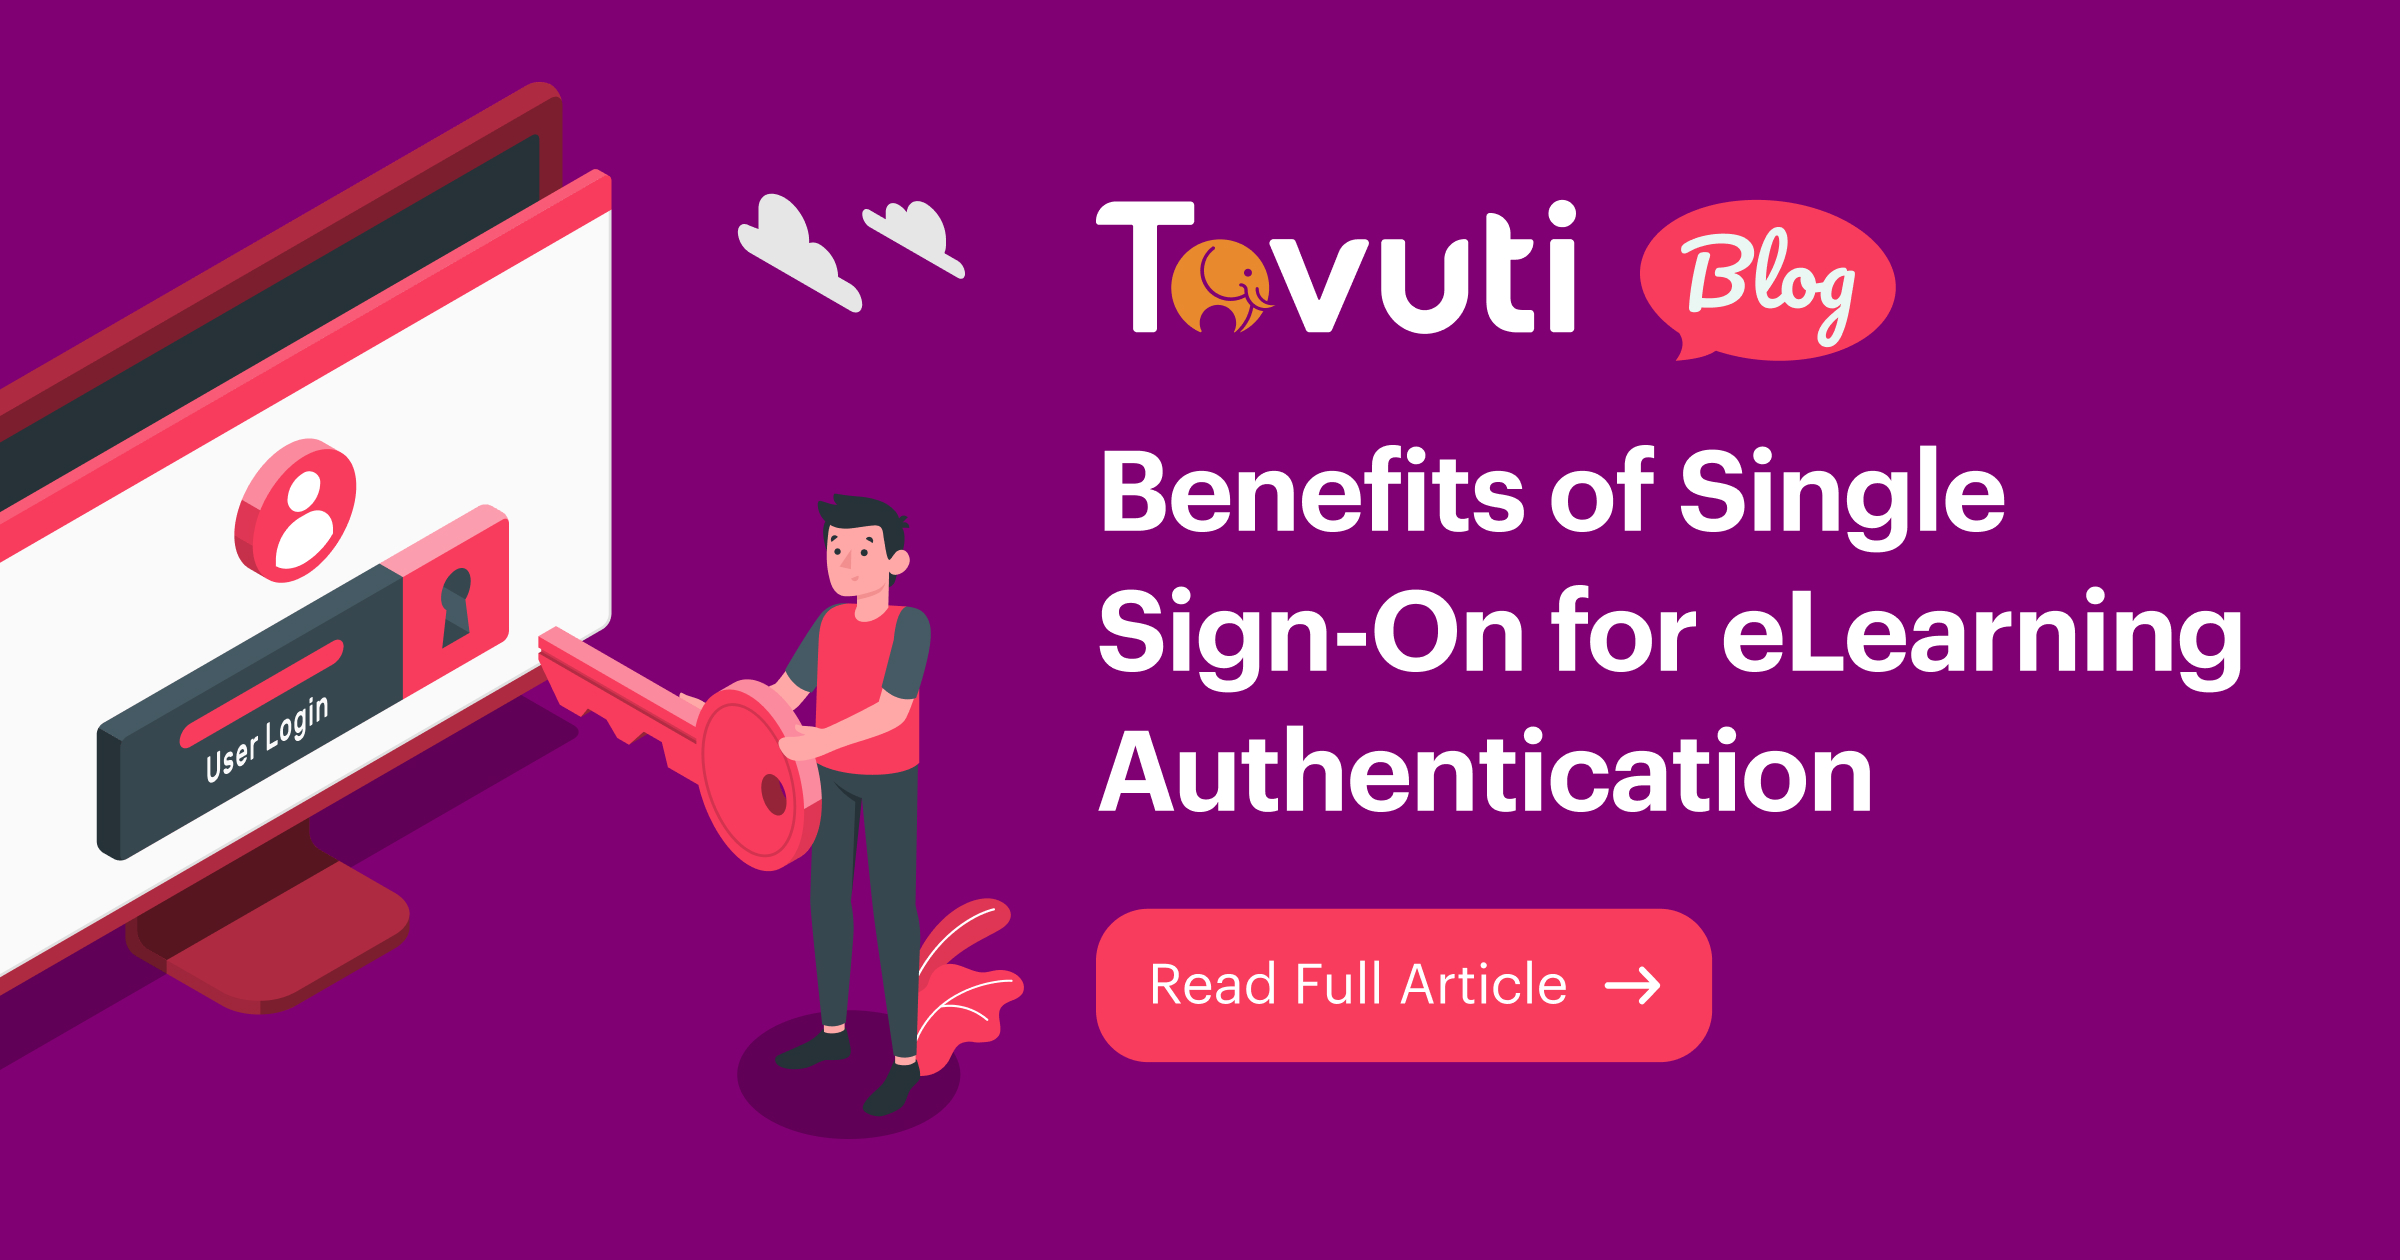 Benefits of Single Sign-On for eLearning Authentication